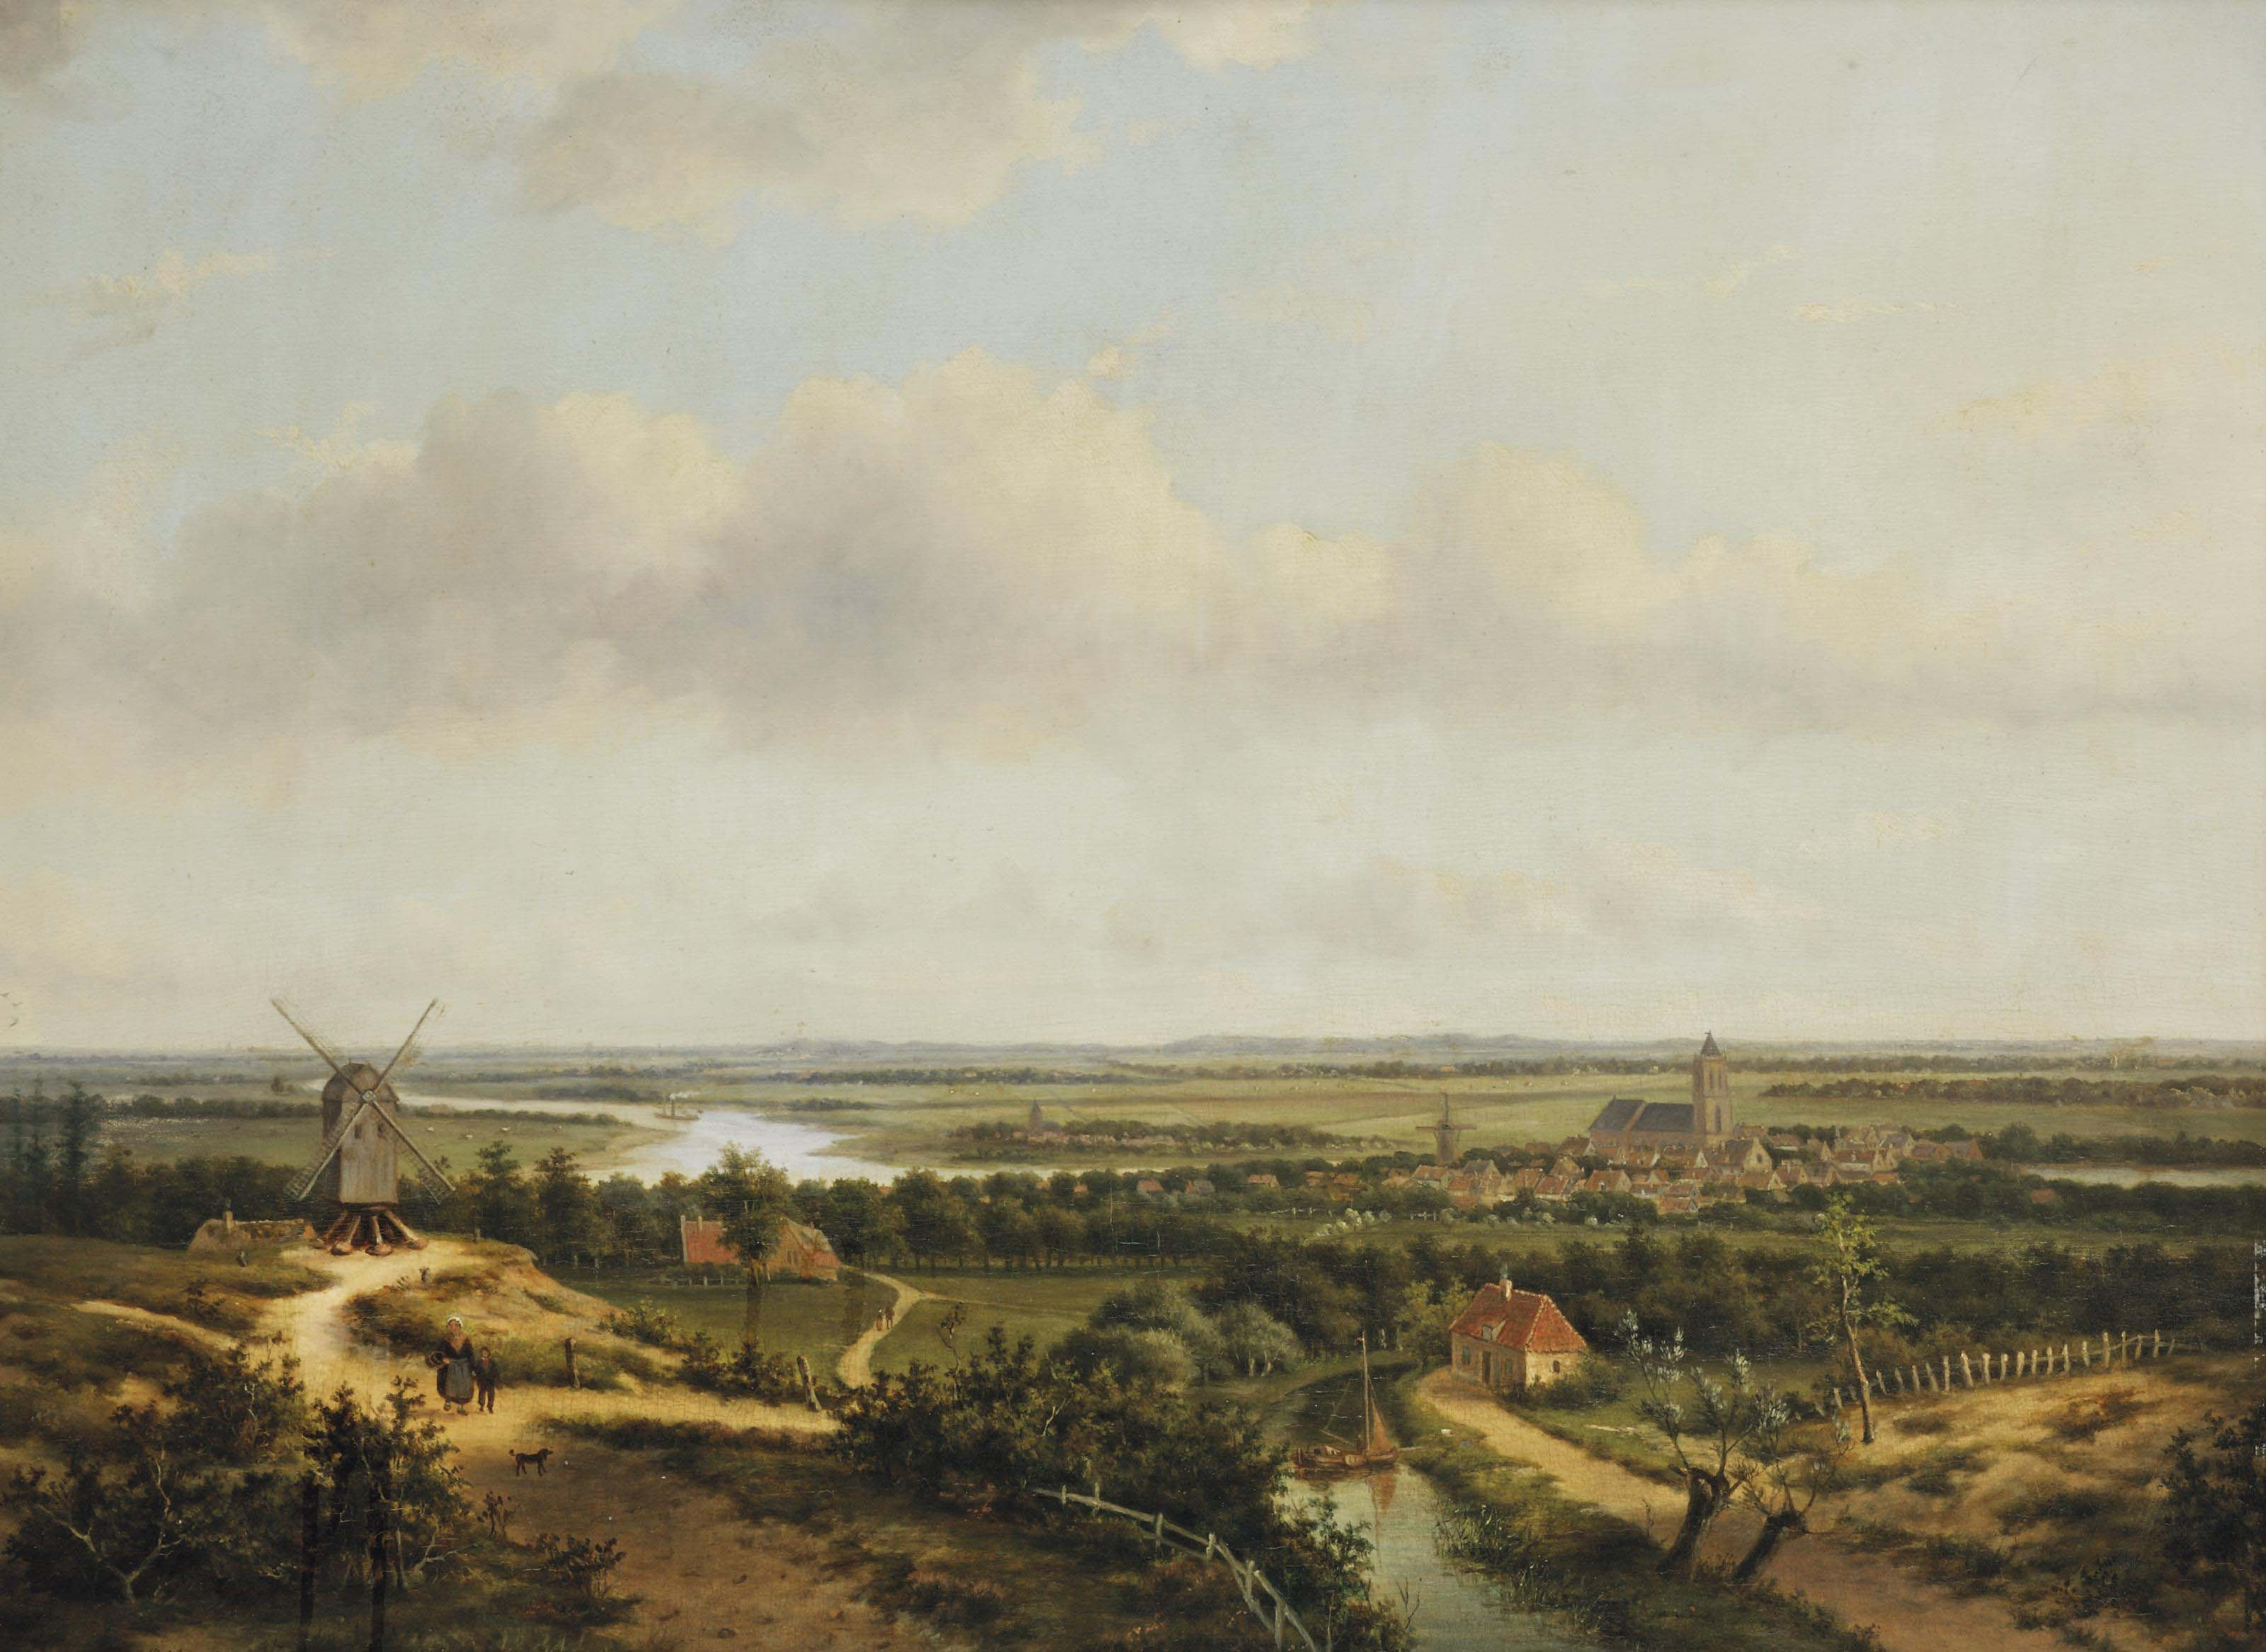 A panoramic river landscape with a windmill and figures